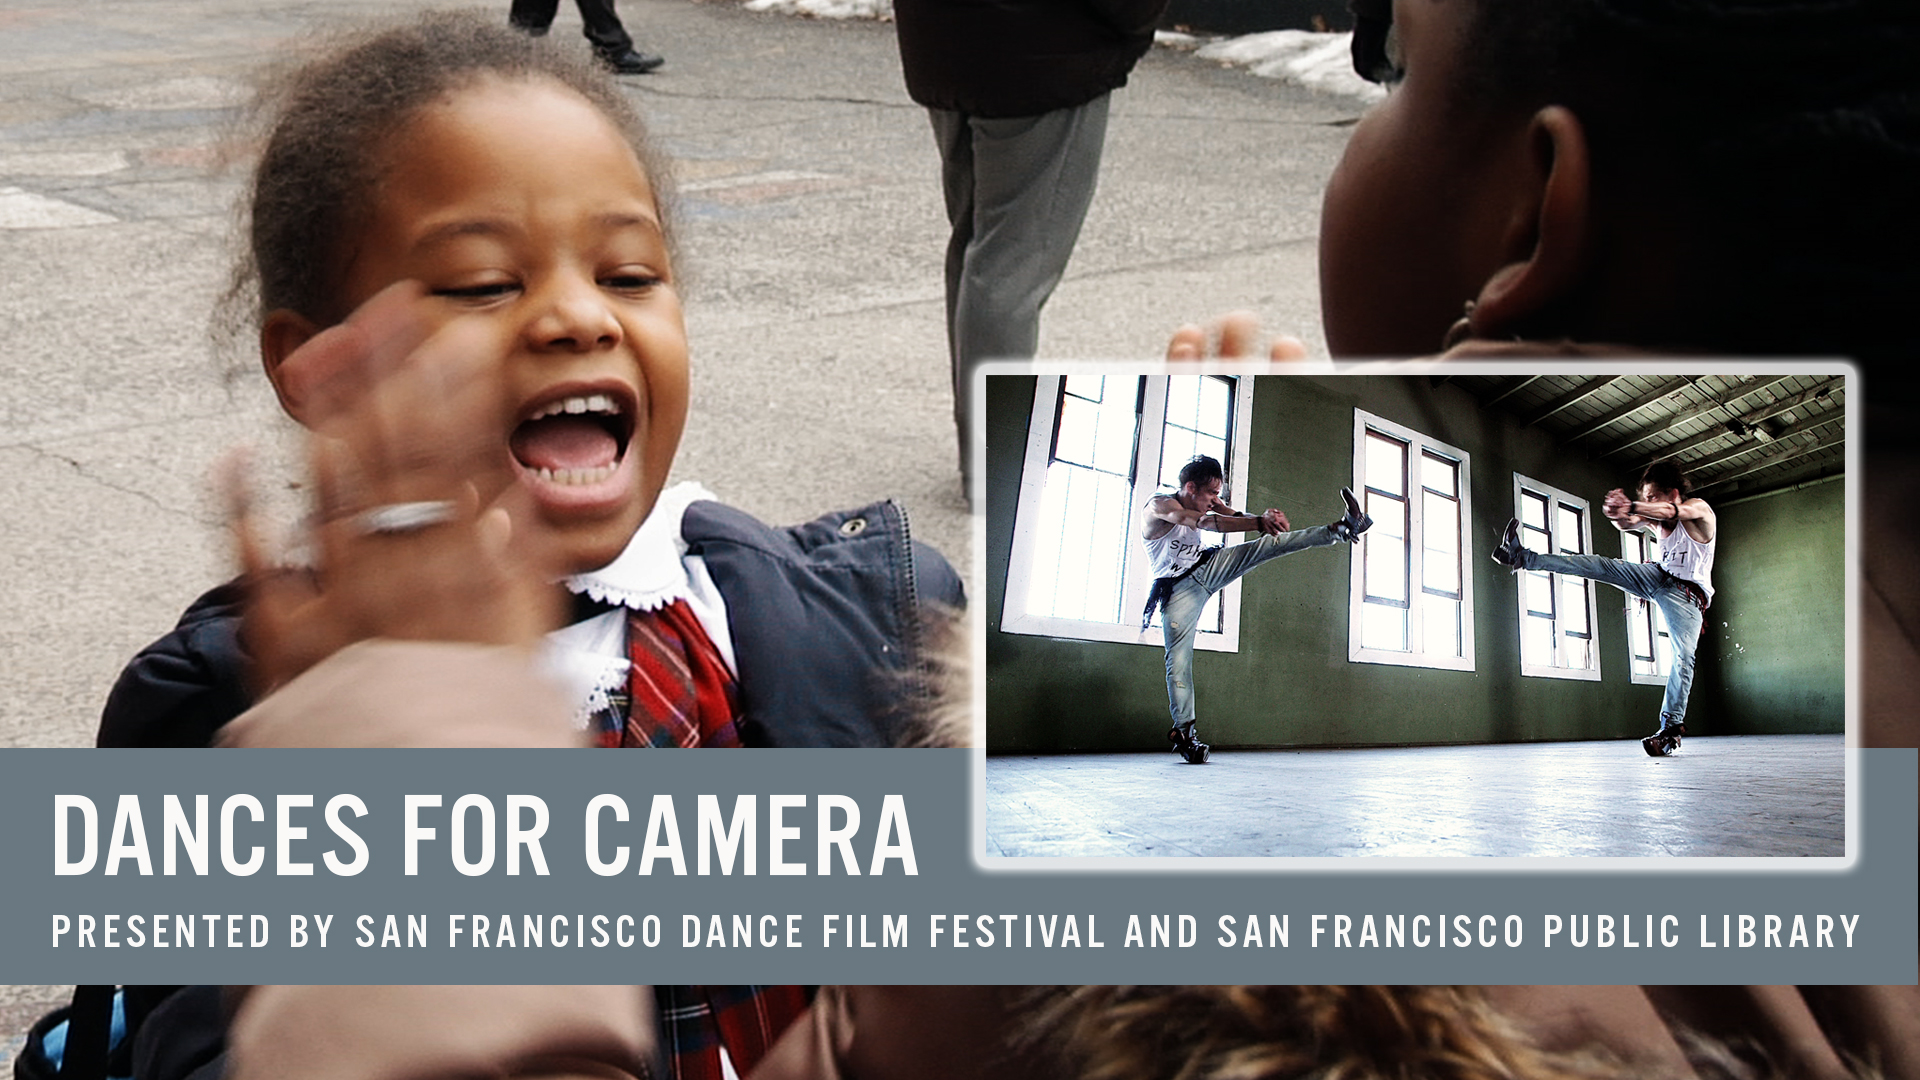 Events, Presented by SFDFF and San Francisco Public Library